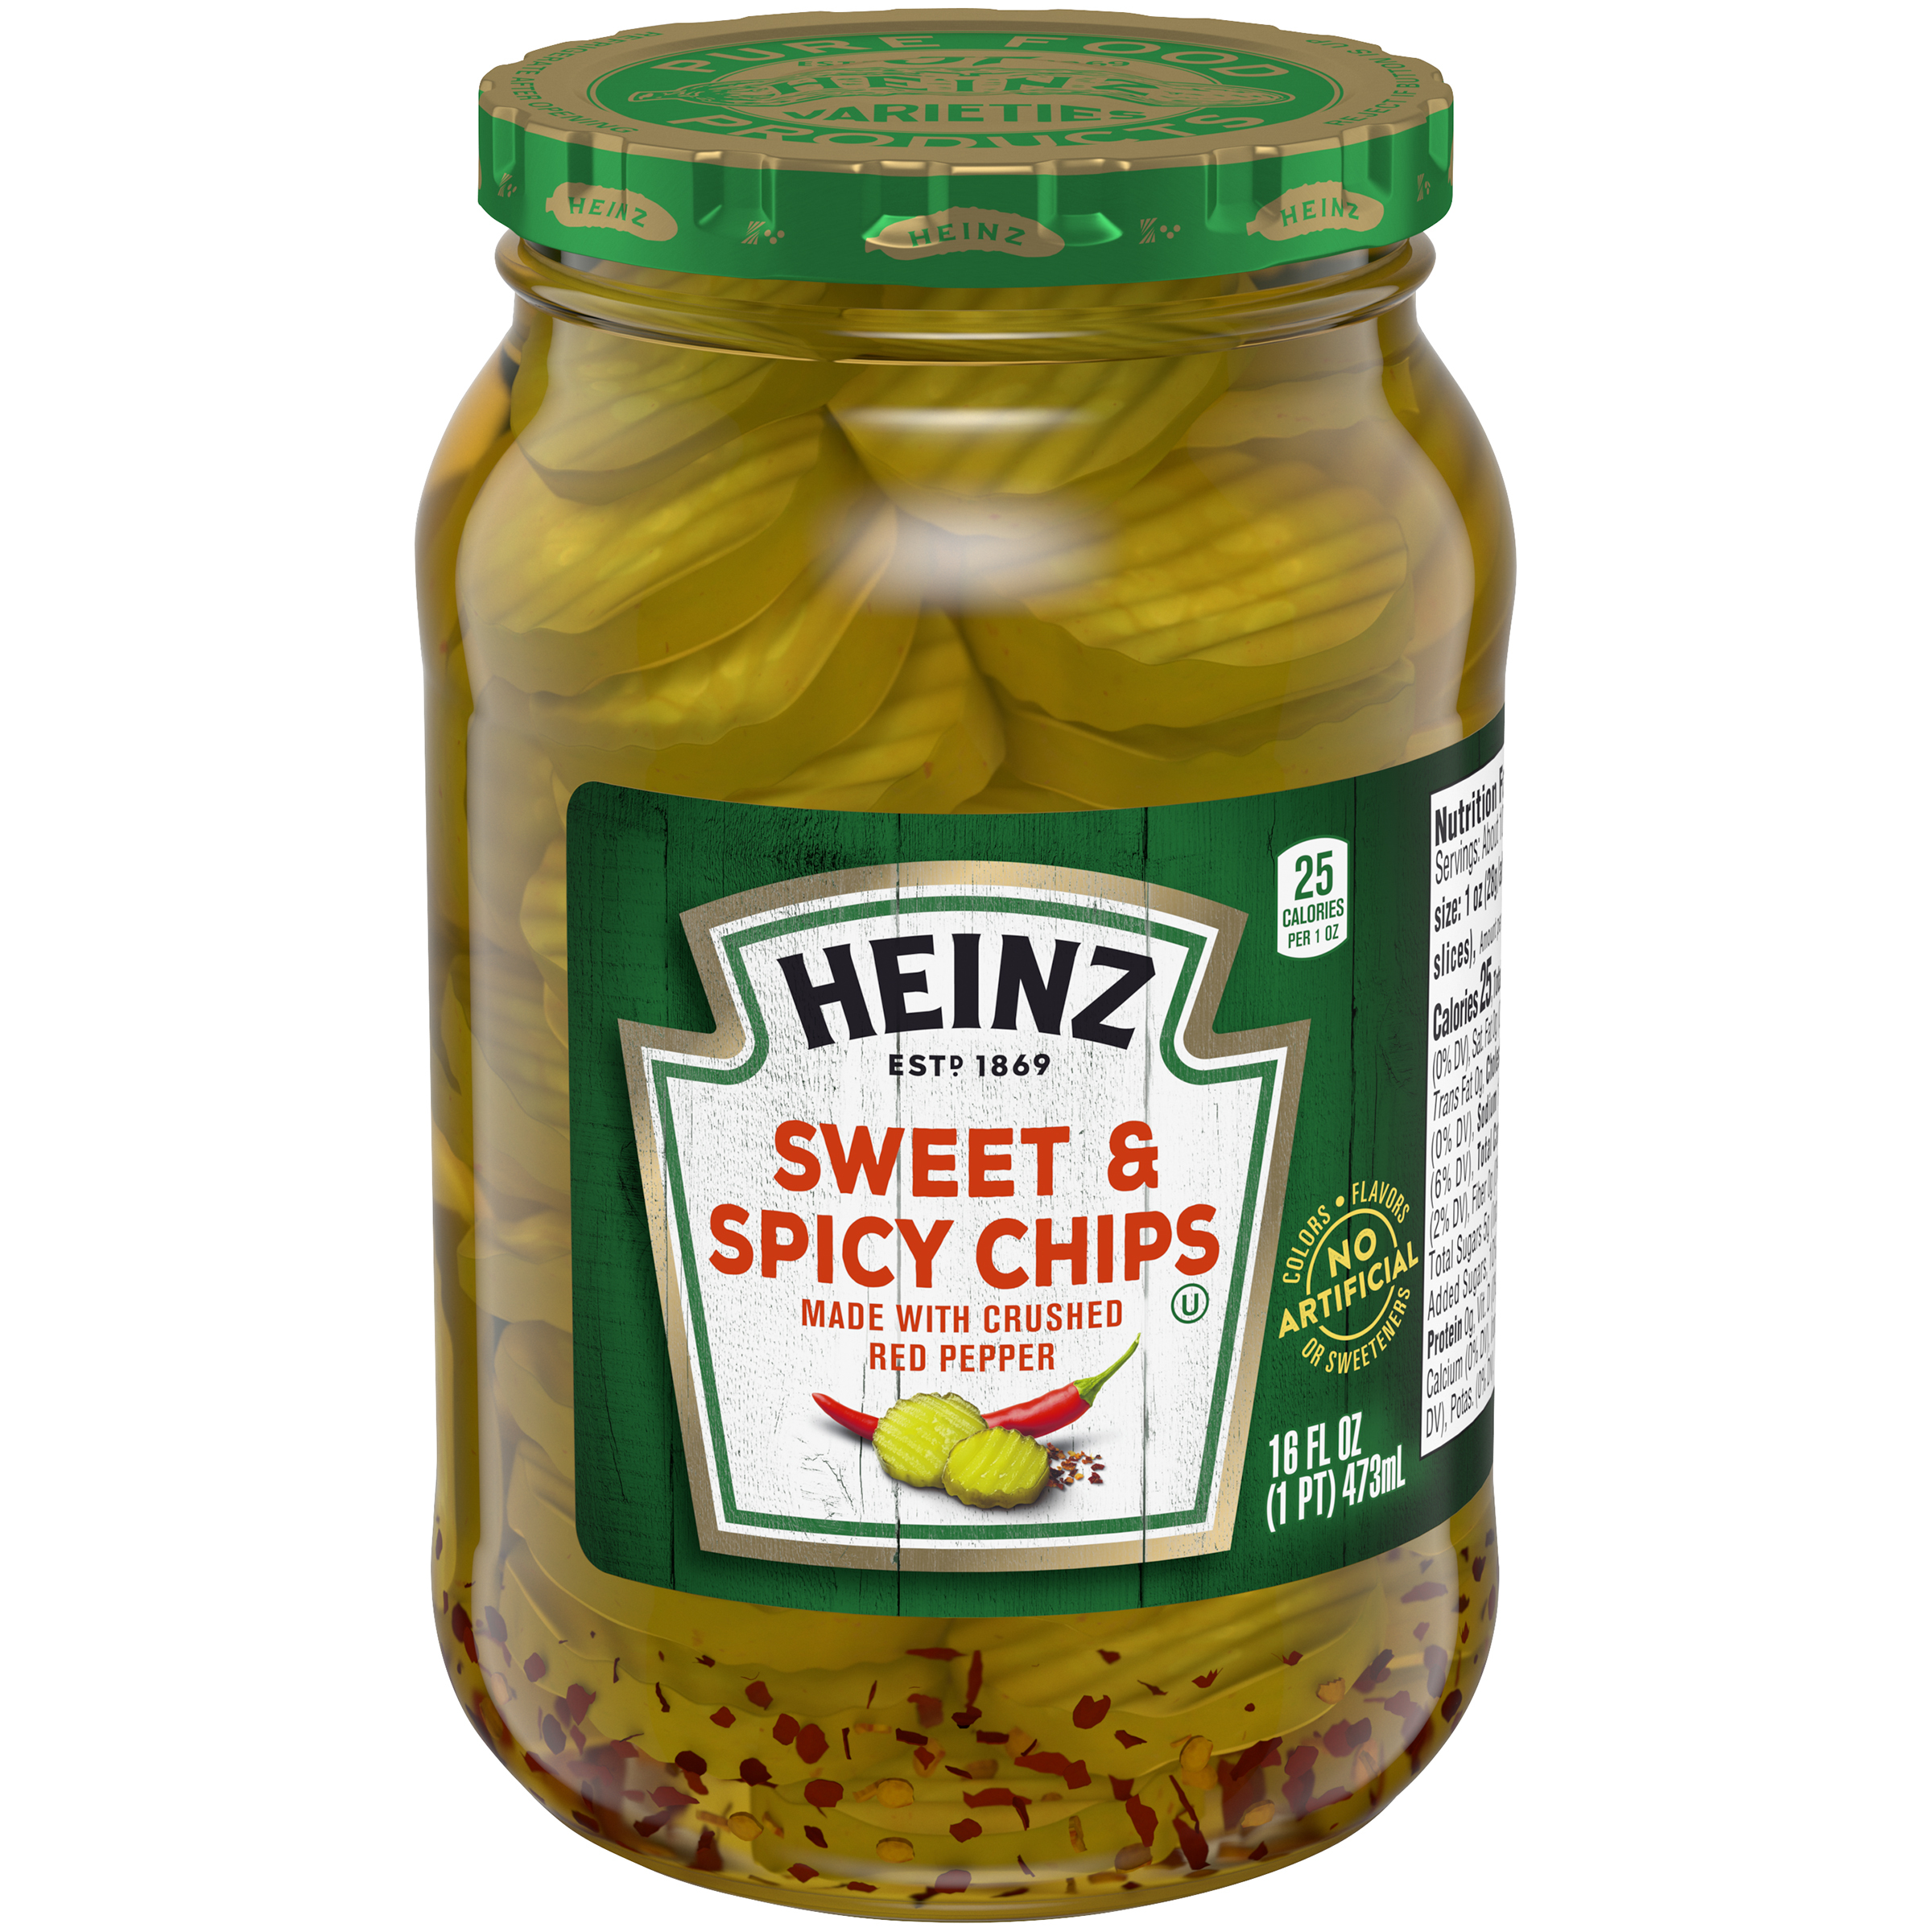 Heinz Sweet and Spicy Chips 16 fl oz Jar image